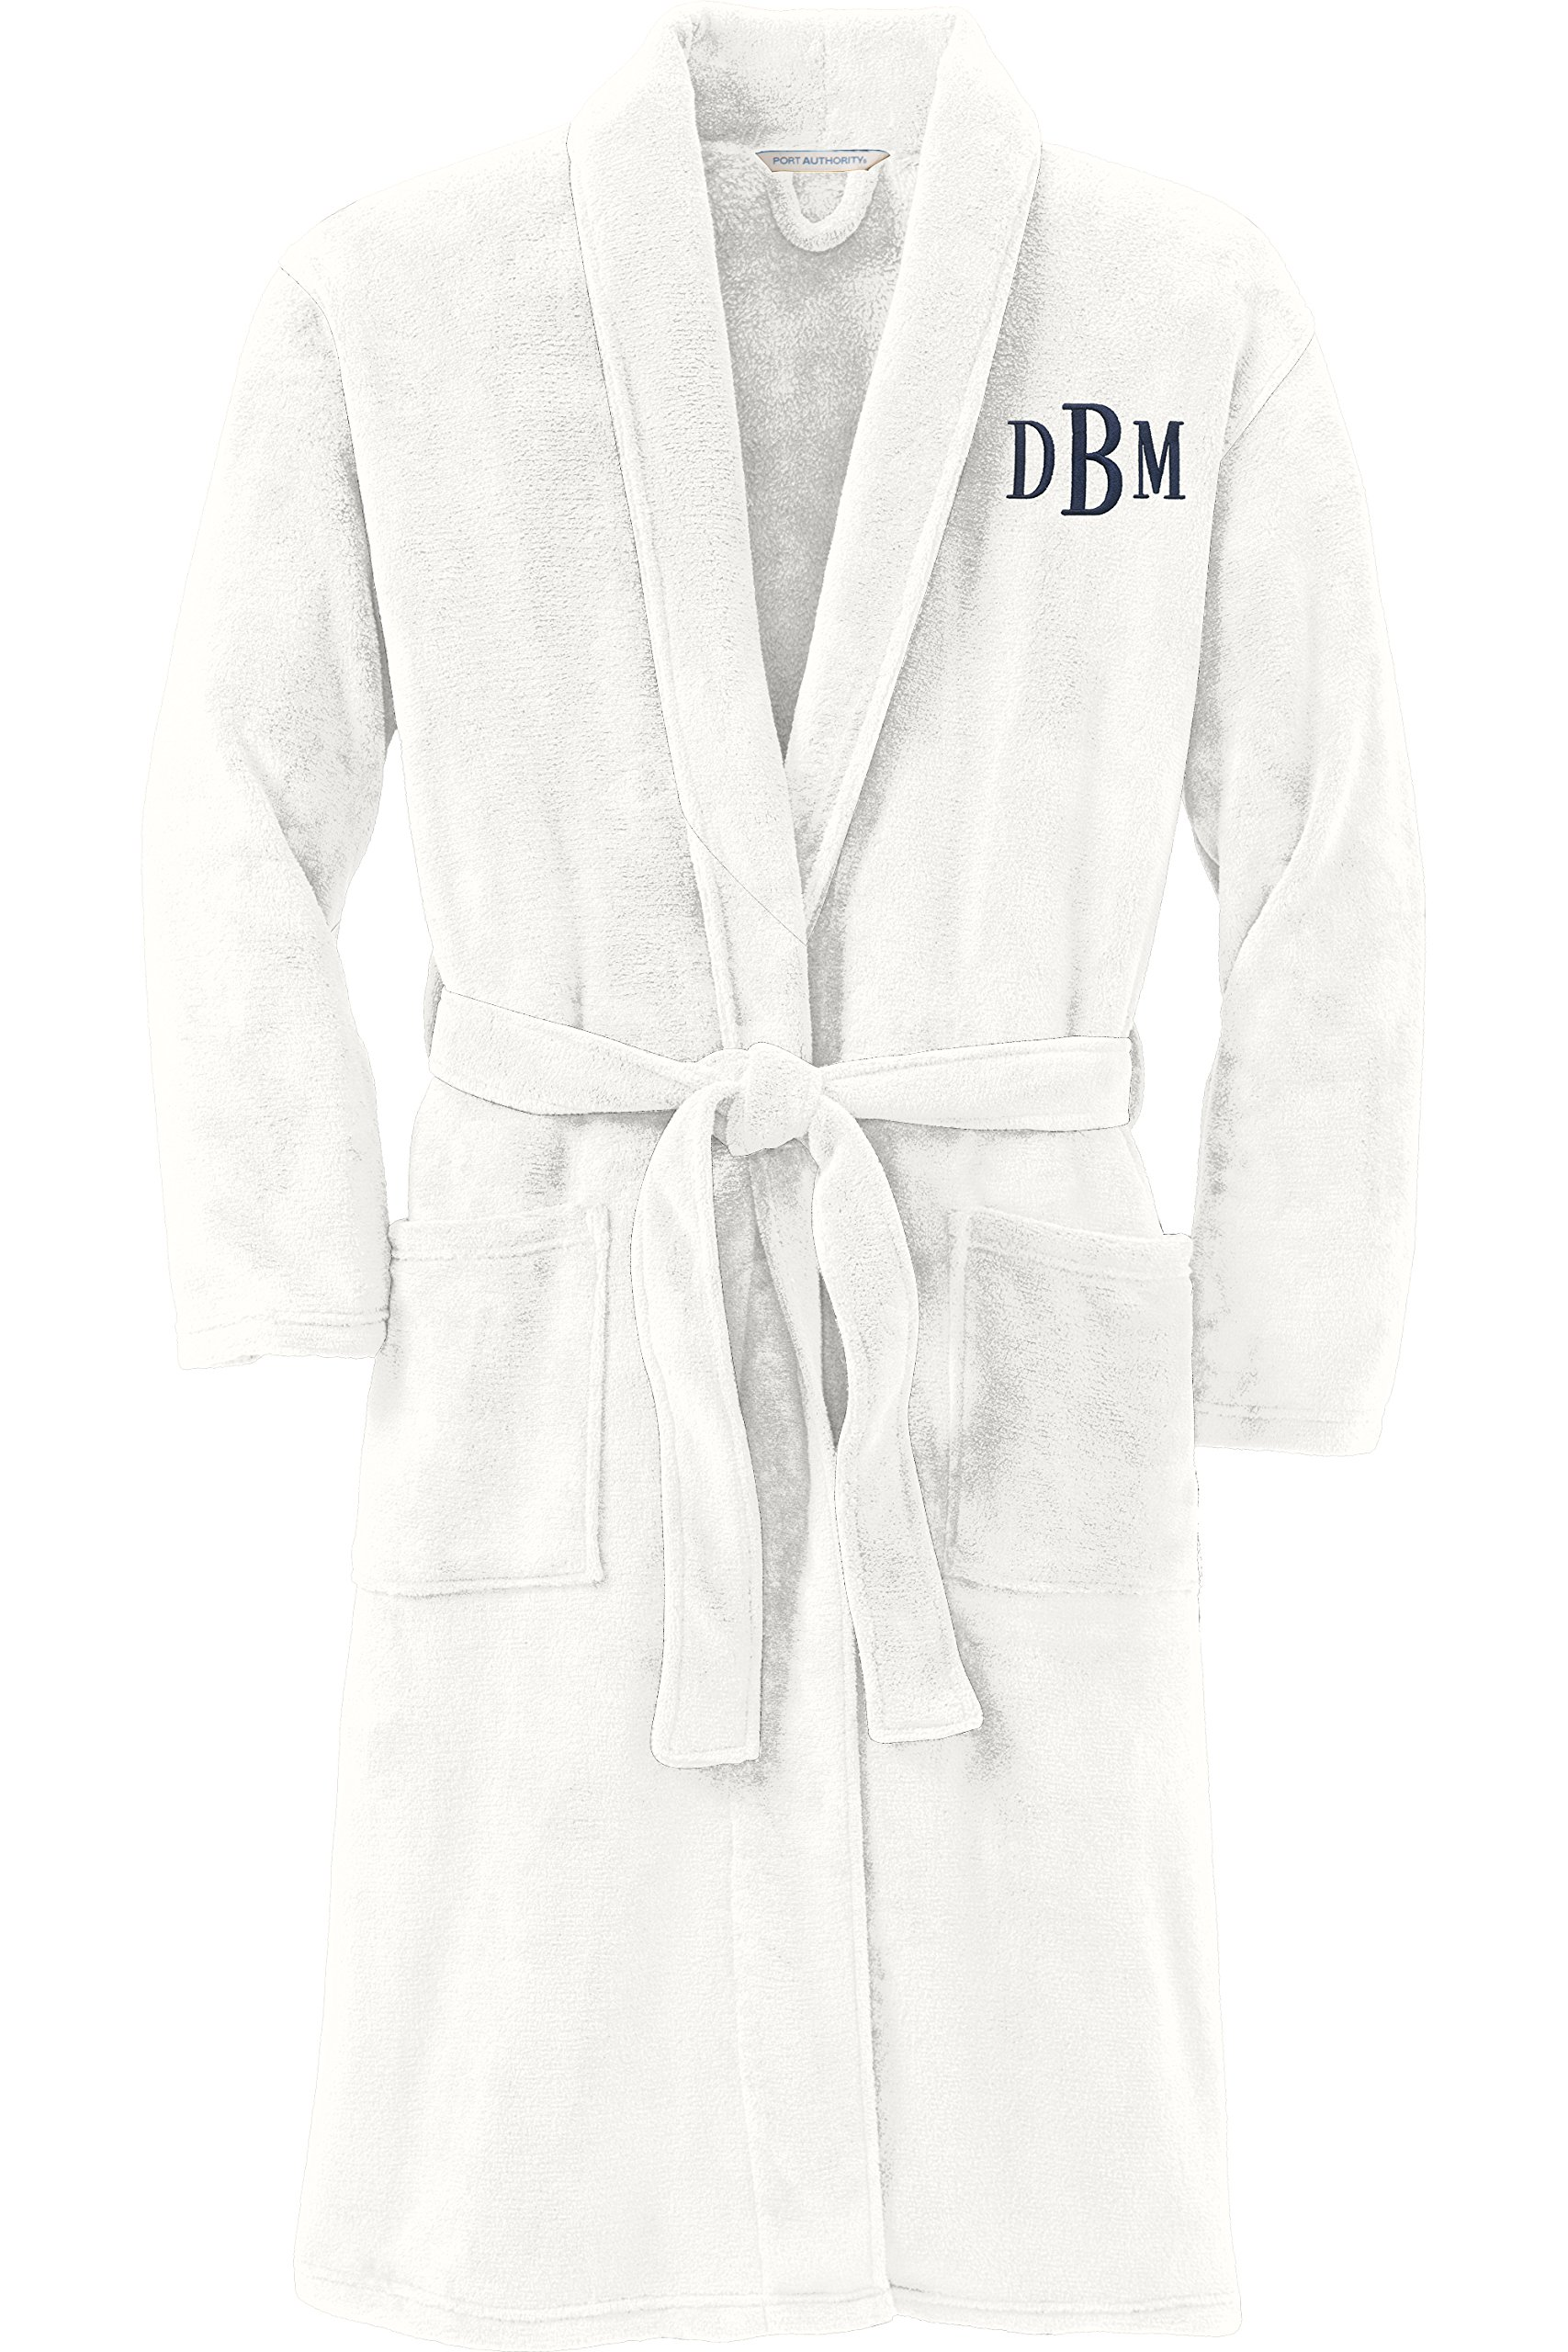 Personalized Plush Microfleece Robe with Embroidered Name, Marshmallow, Small/Medium